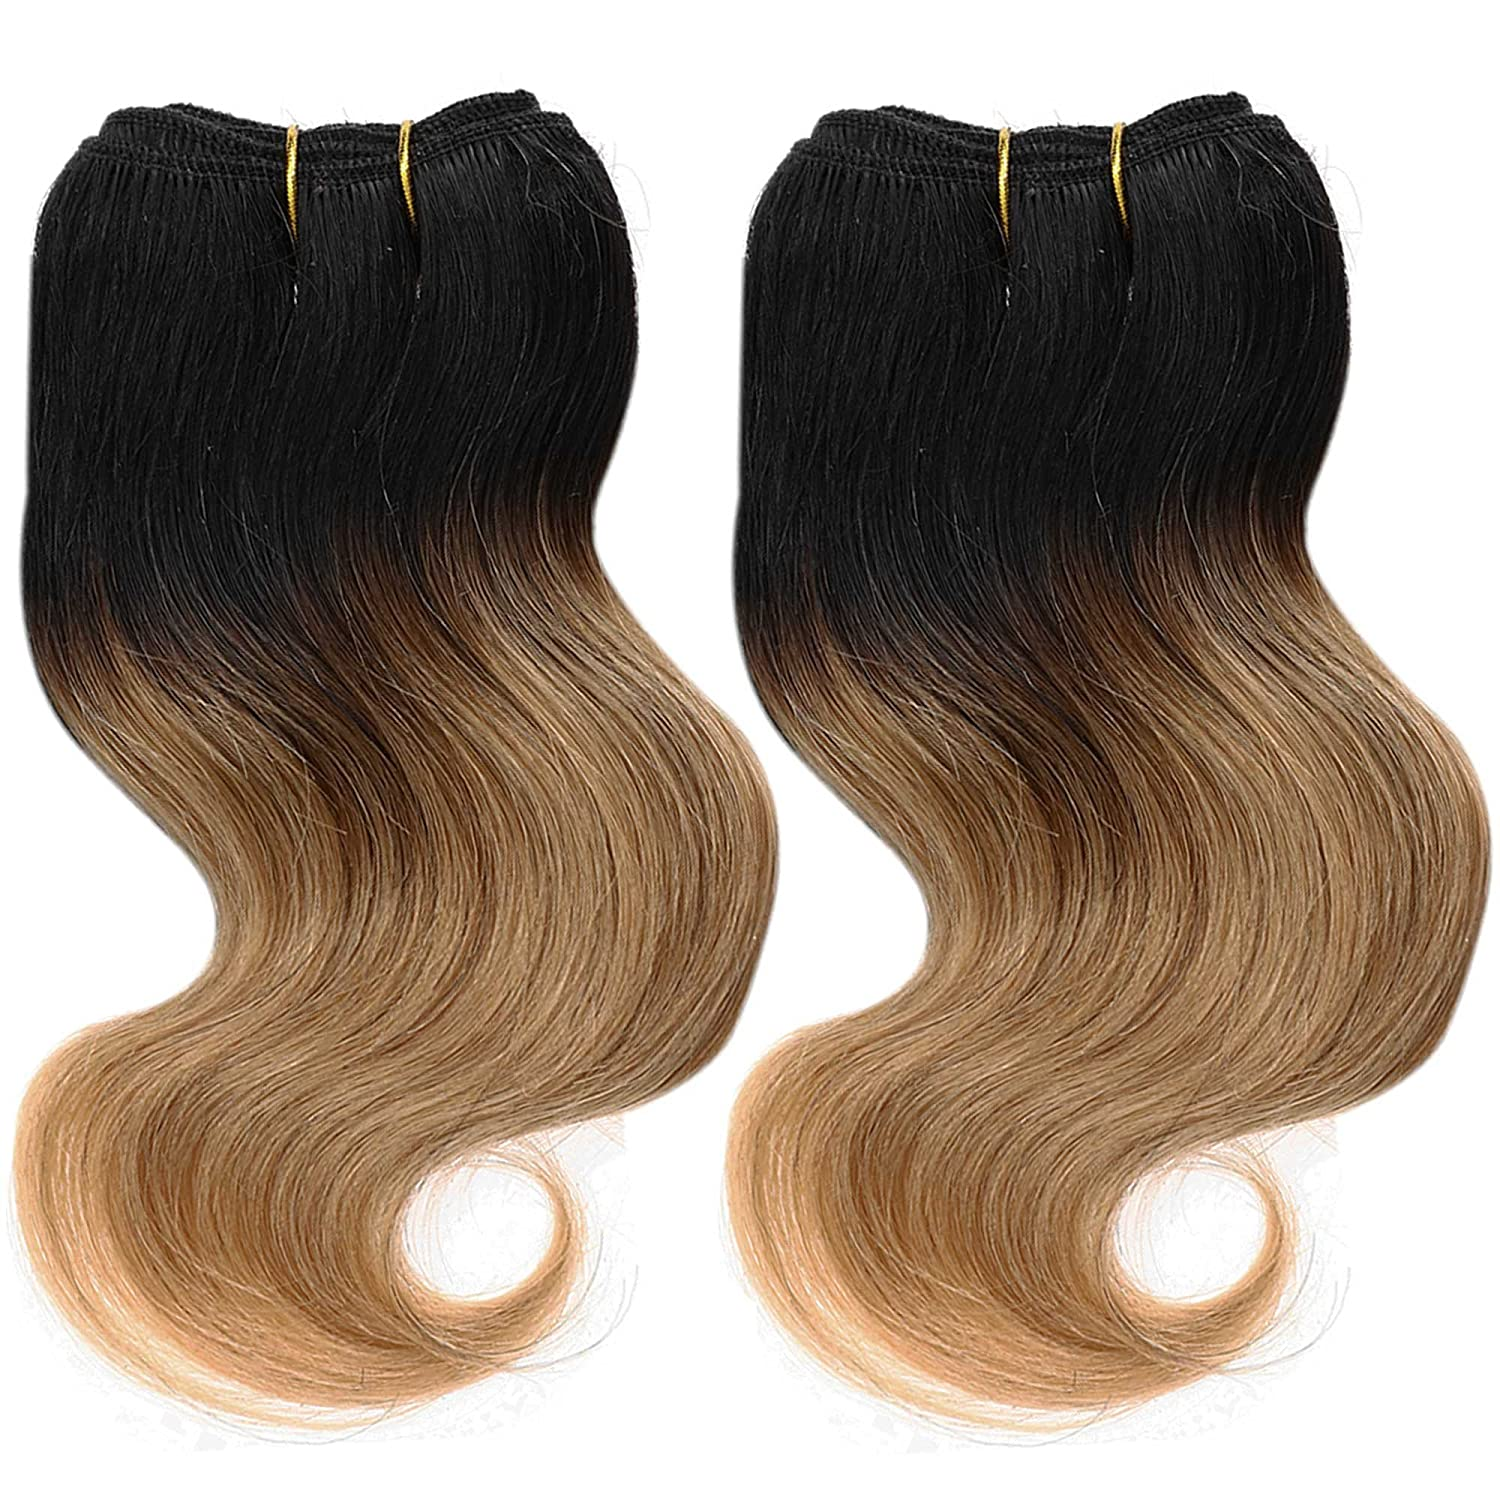 Emmet Brazilian Hair Extensions Ombre Colors Virgin Hair Can Be Dyed